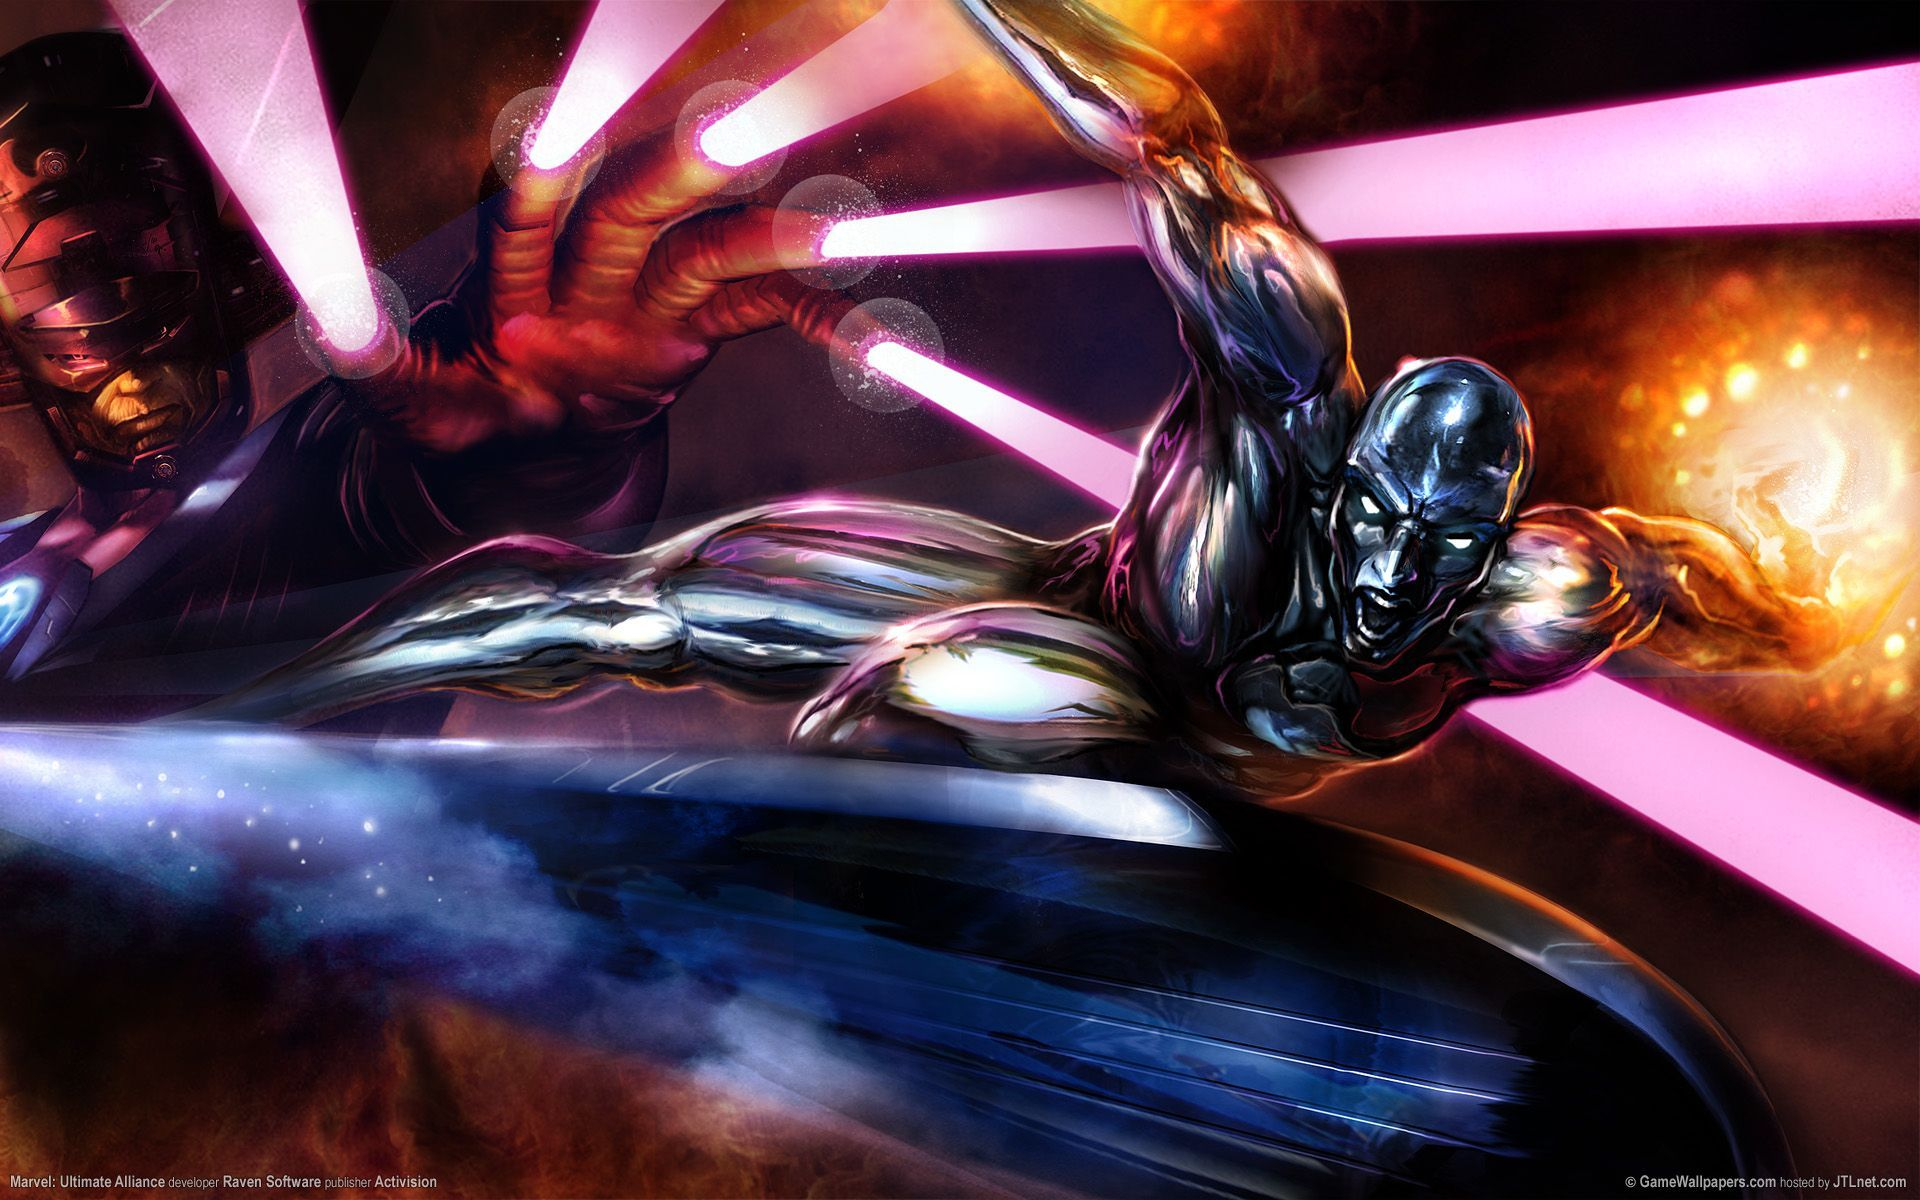 1920x1200 Silver Surfer, #Galactus, #Marvel | Wallpaper No. 8003 - wallhaven ...